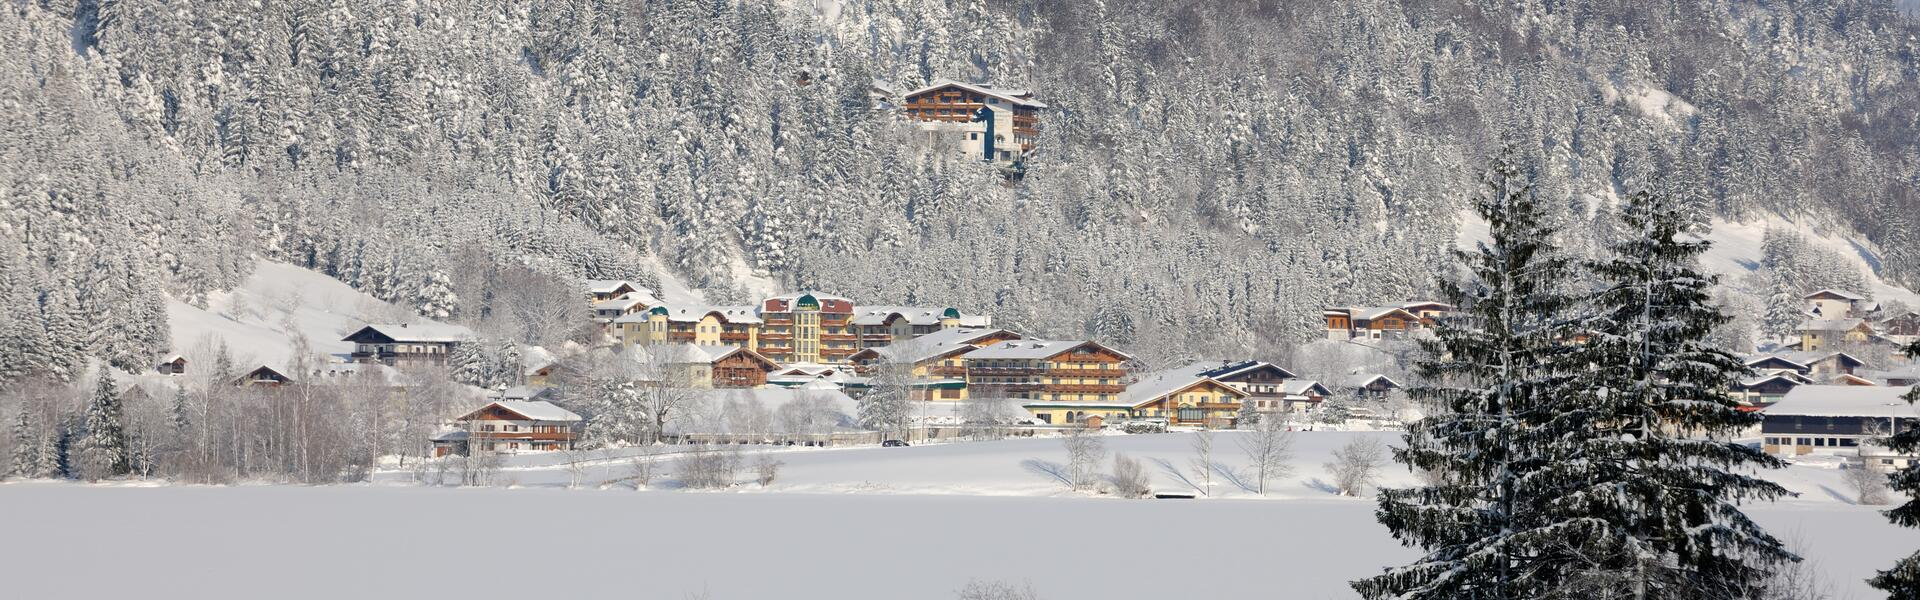 winter in walchsee